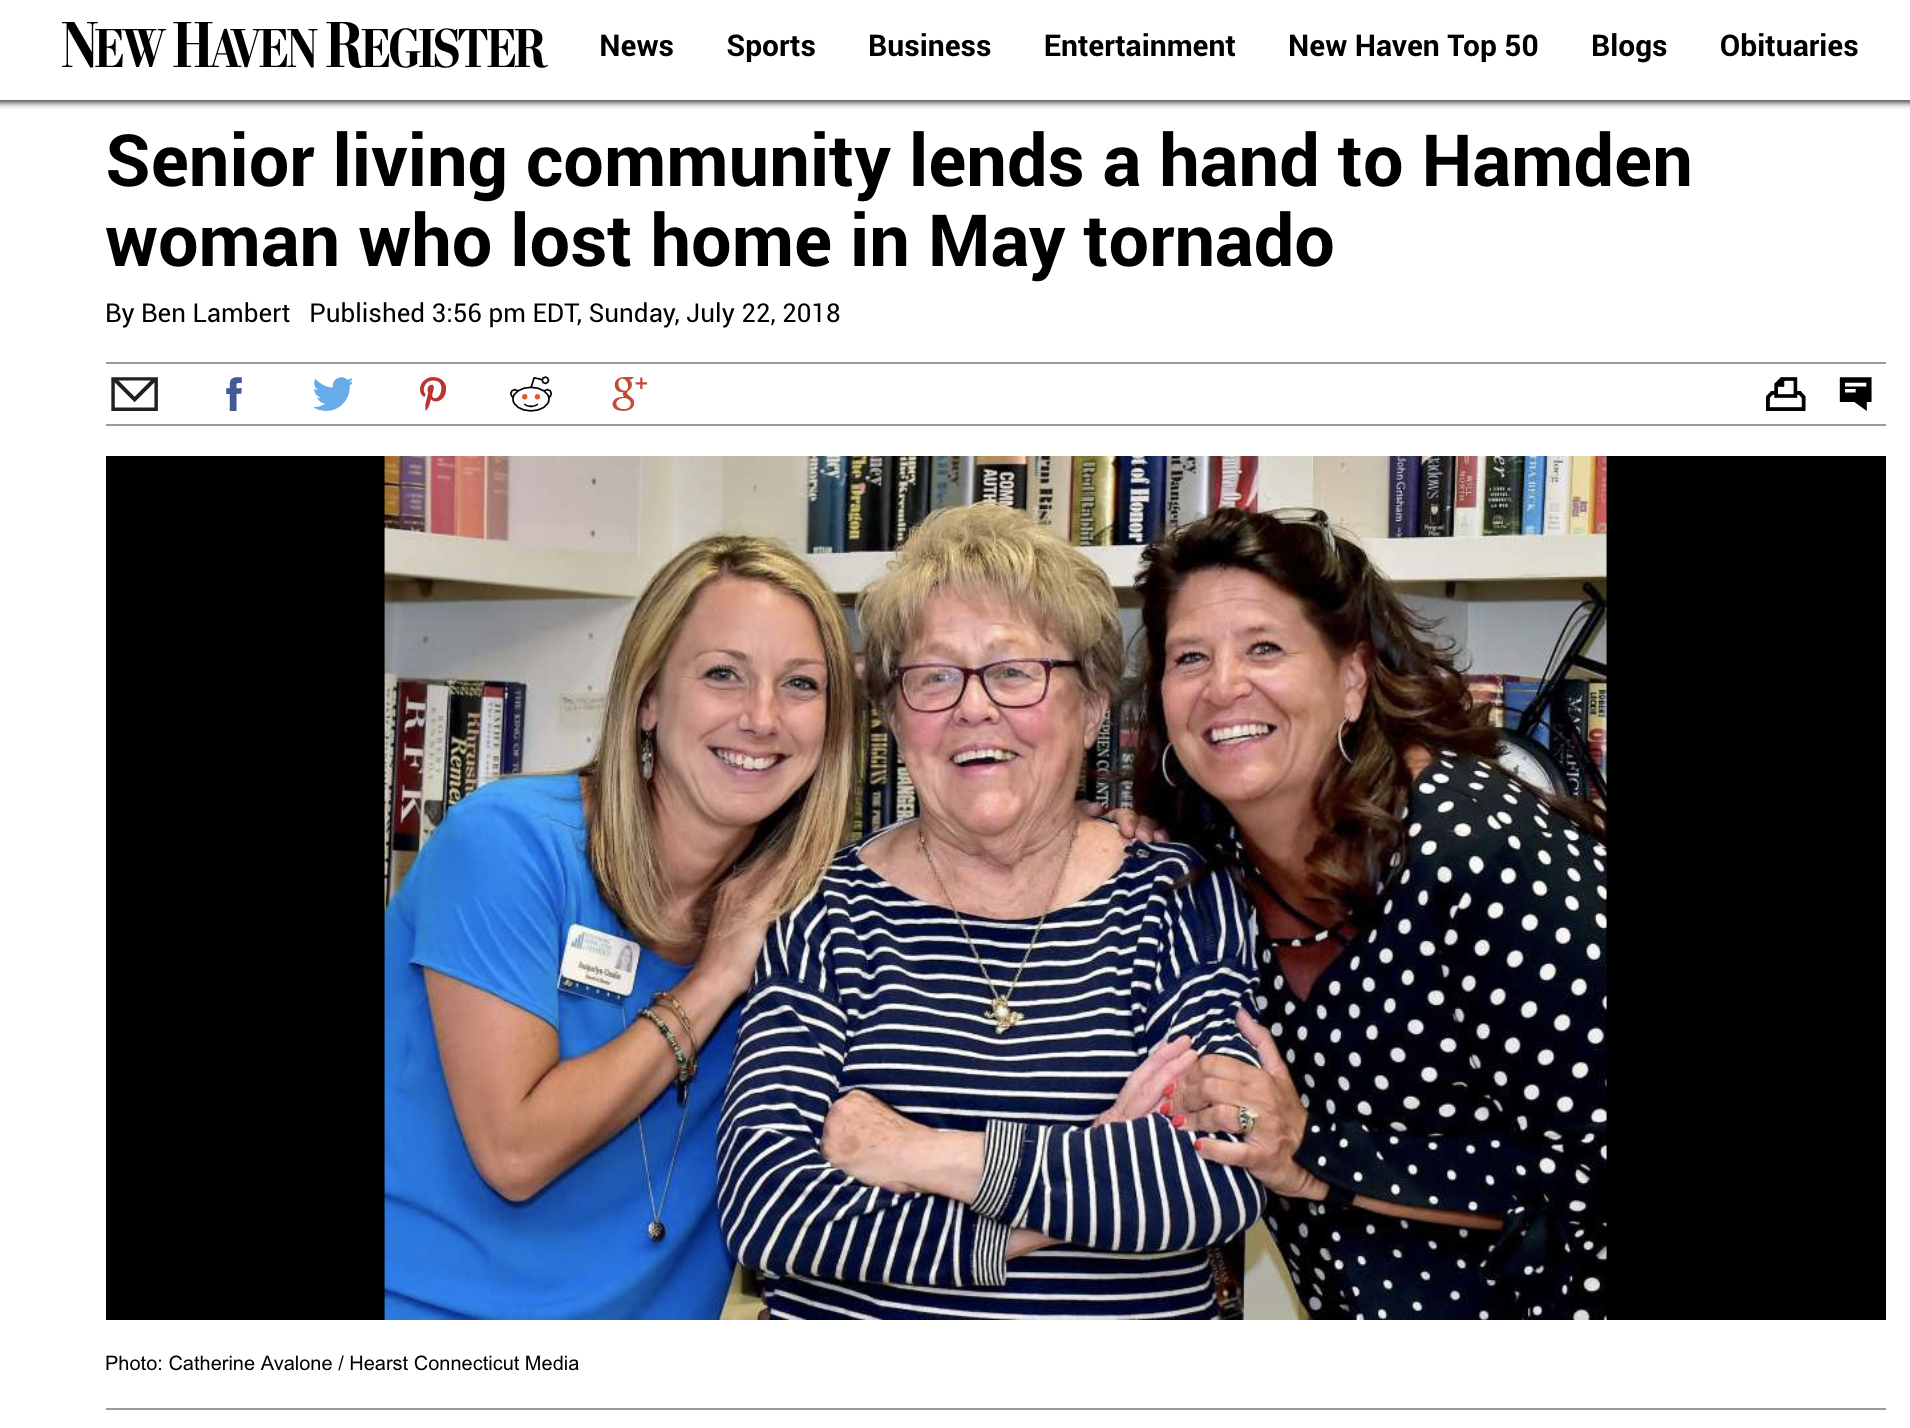 Jacquelyn Gaulin,Adele and Mia Criscuolo story was also published in the New Haven Register.